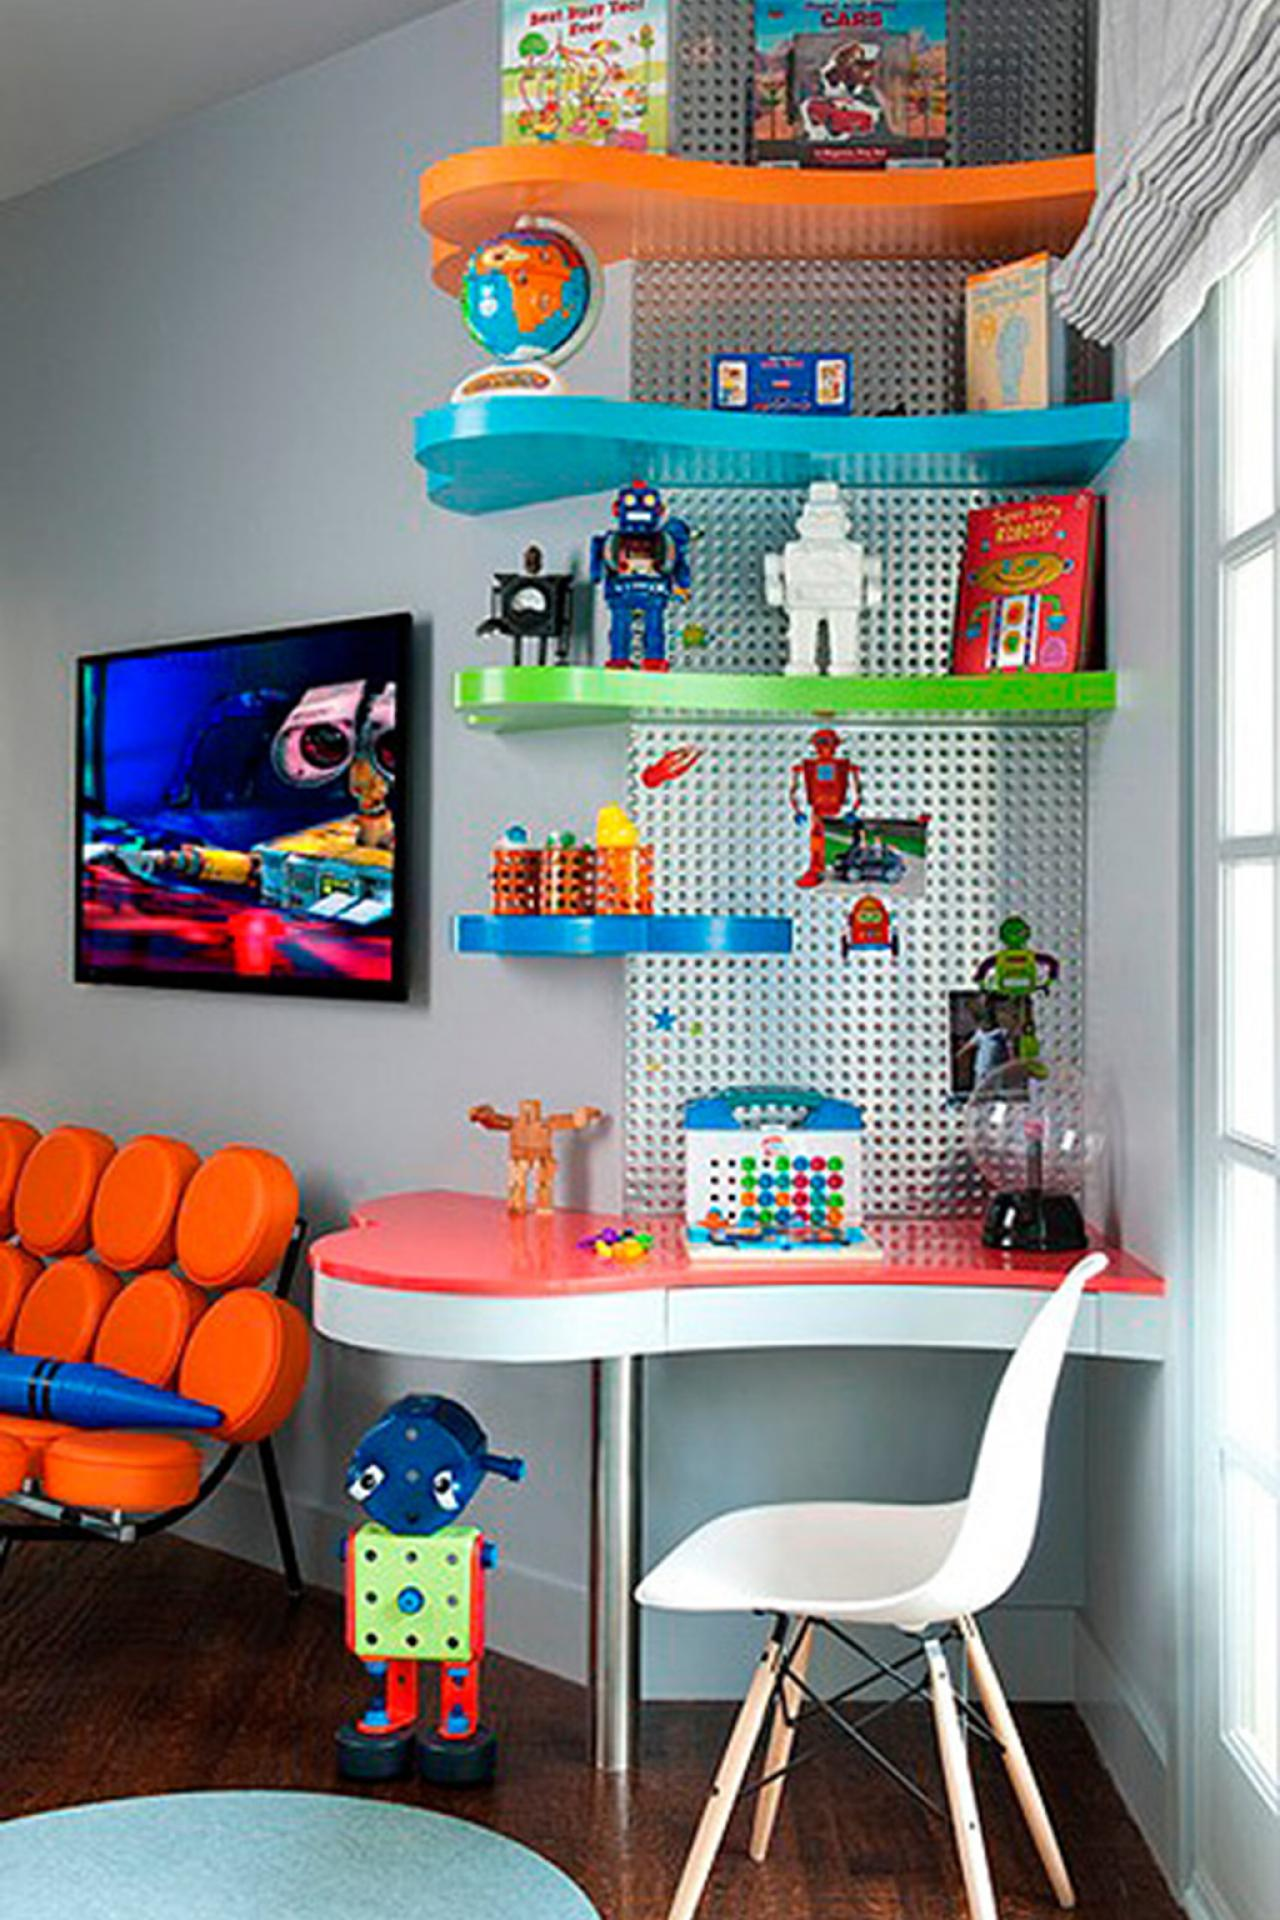 Kids Room Desk Ideas